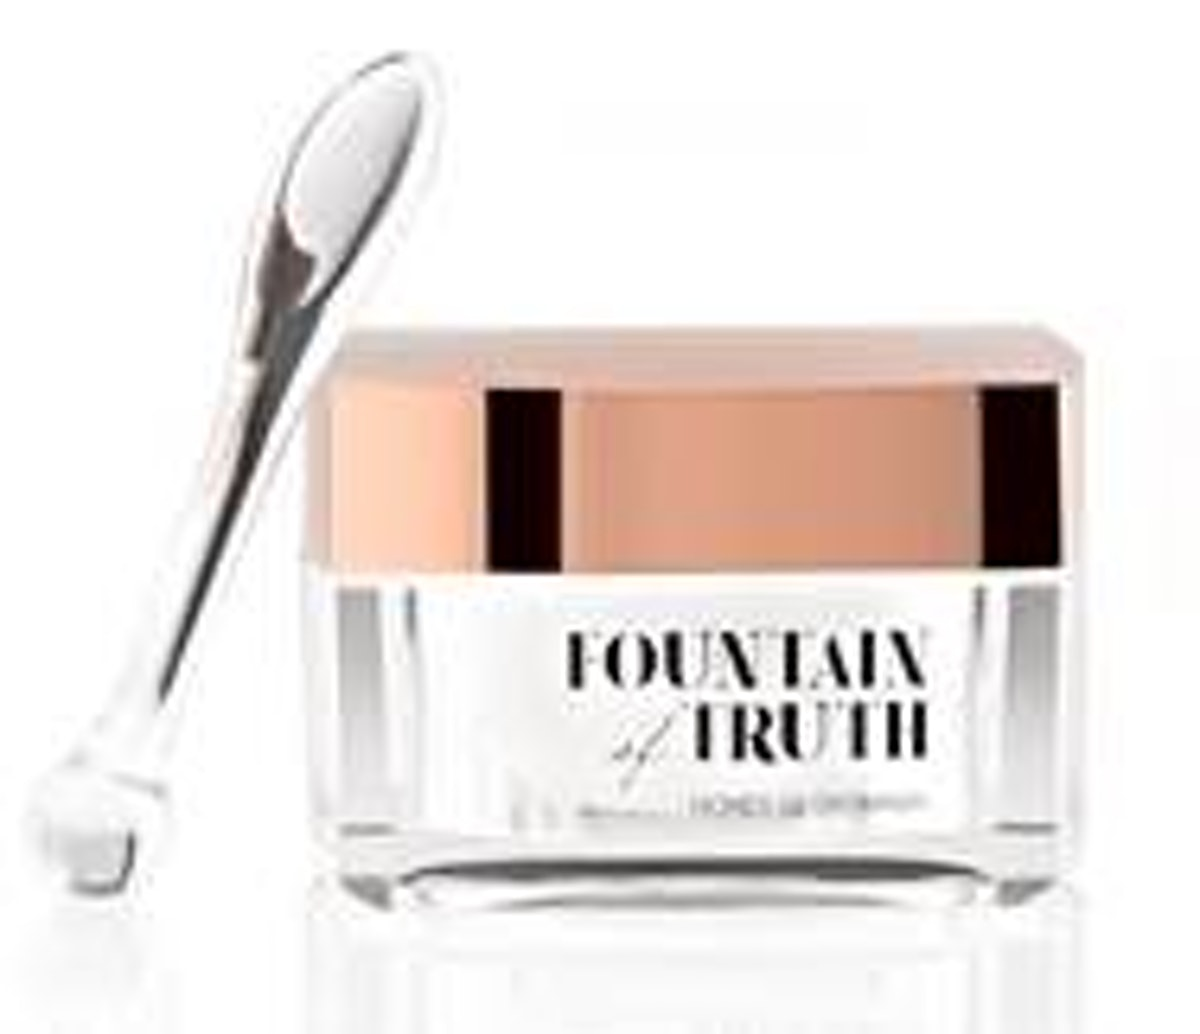 Fountain of Truth Honey Glow Mask